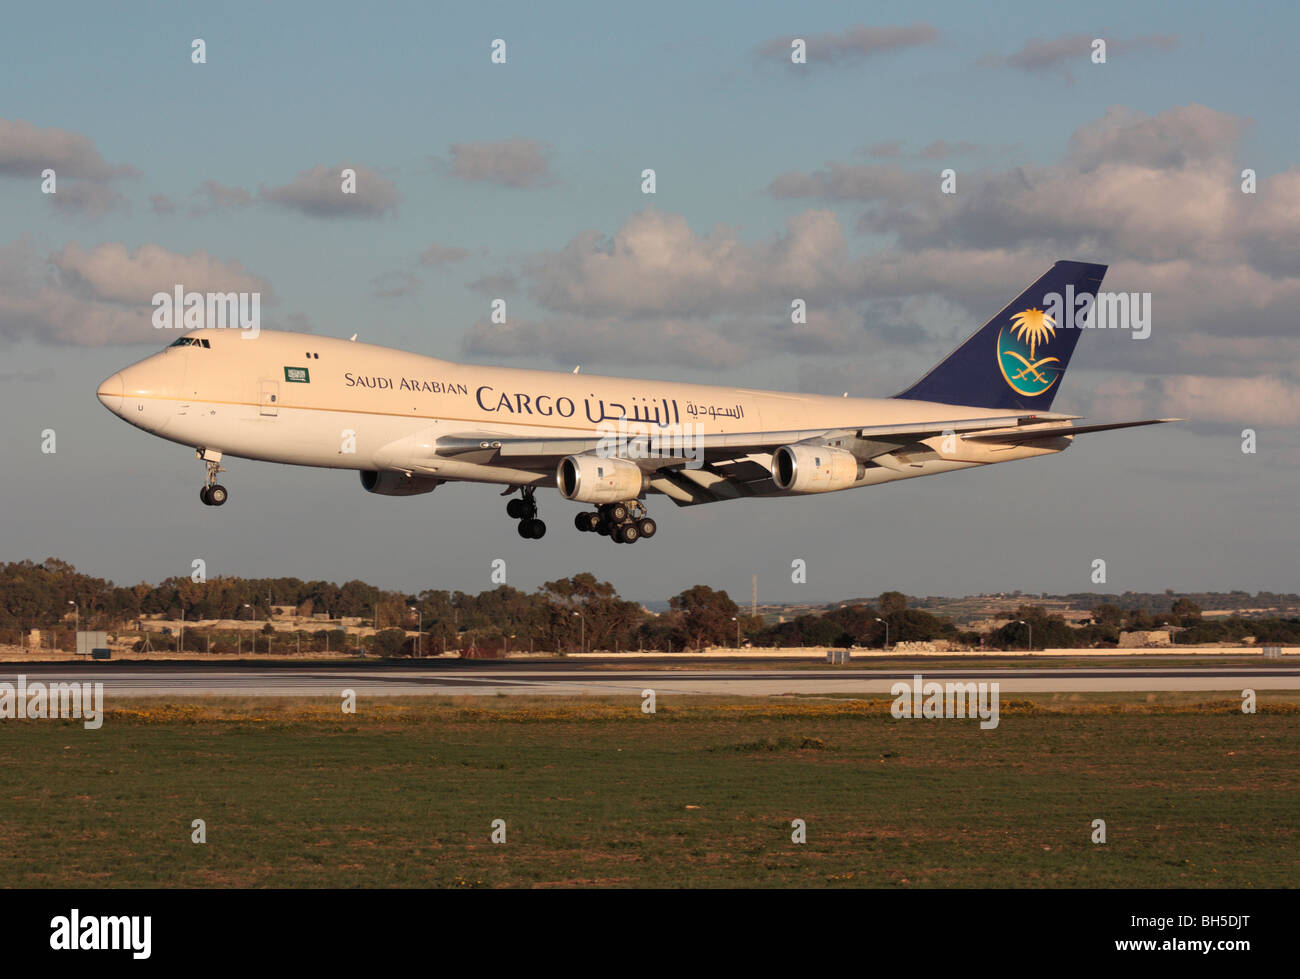 Commercial air transport. Saudi Arabian Airlines Cargo Boeing 747-200F on arrival in Malta - Stock Image